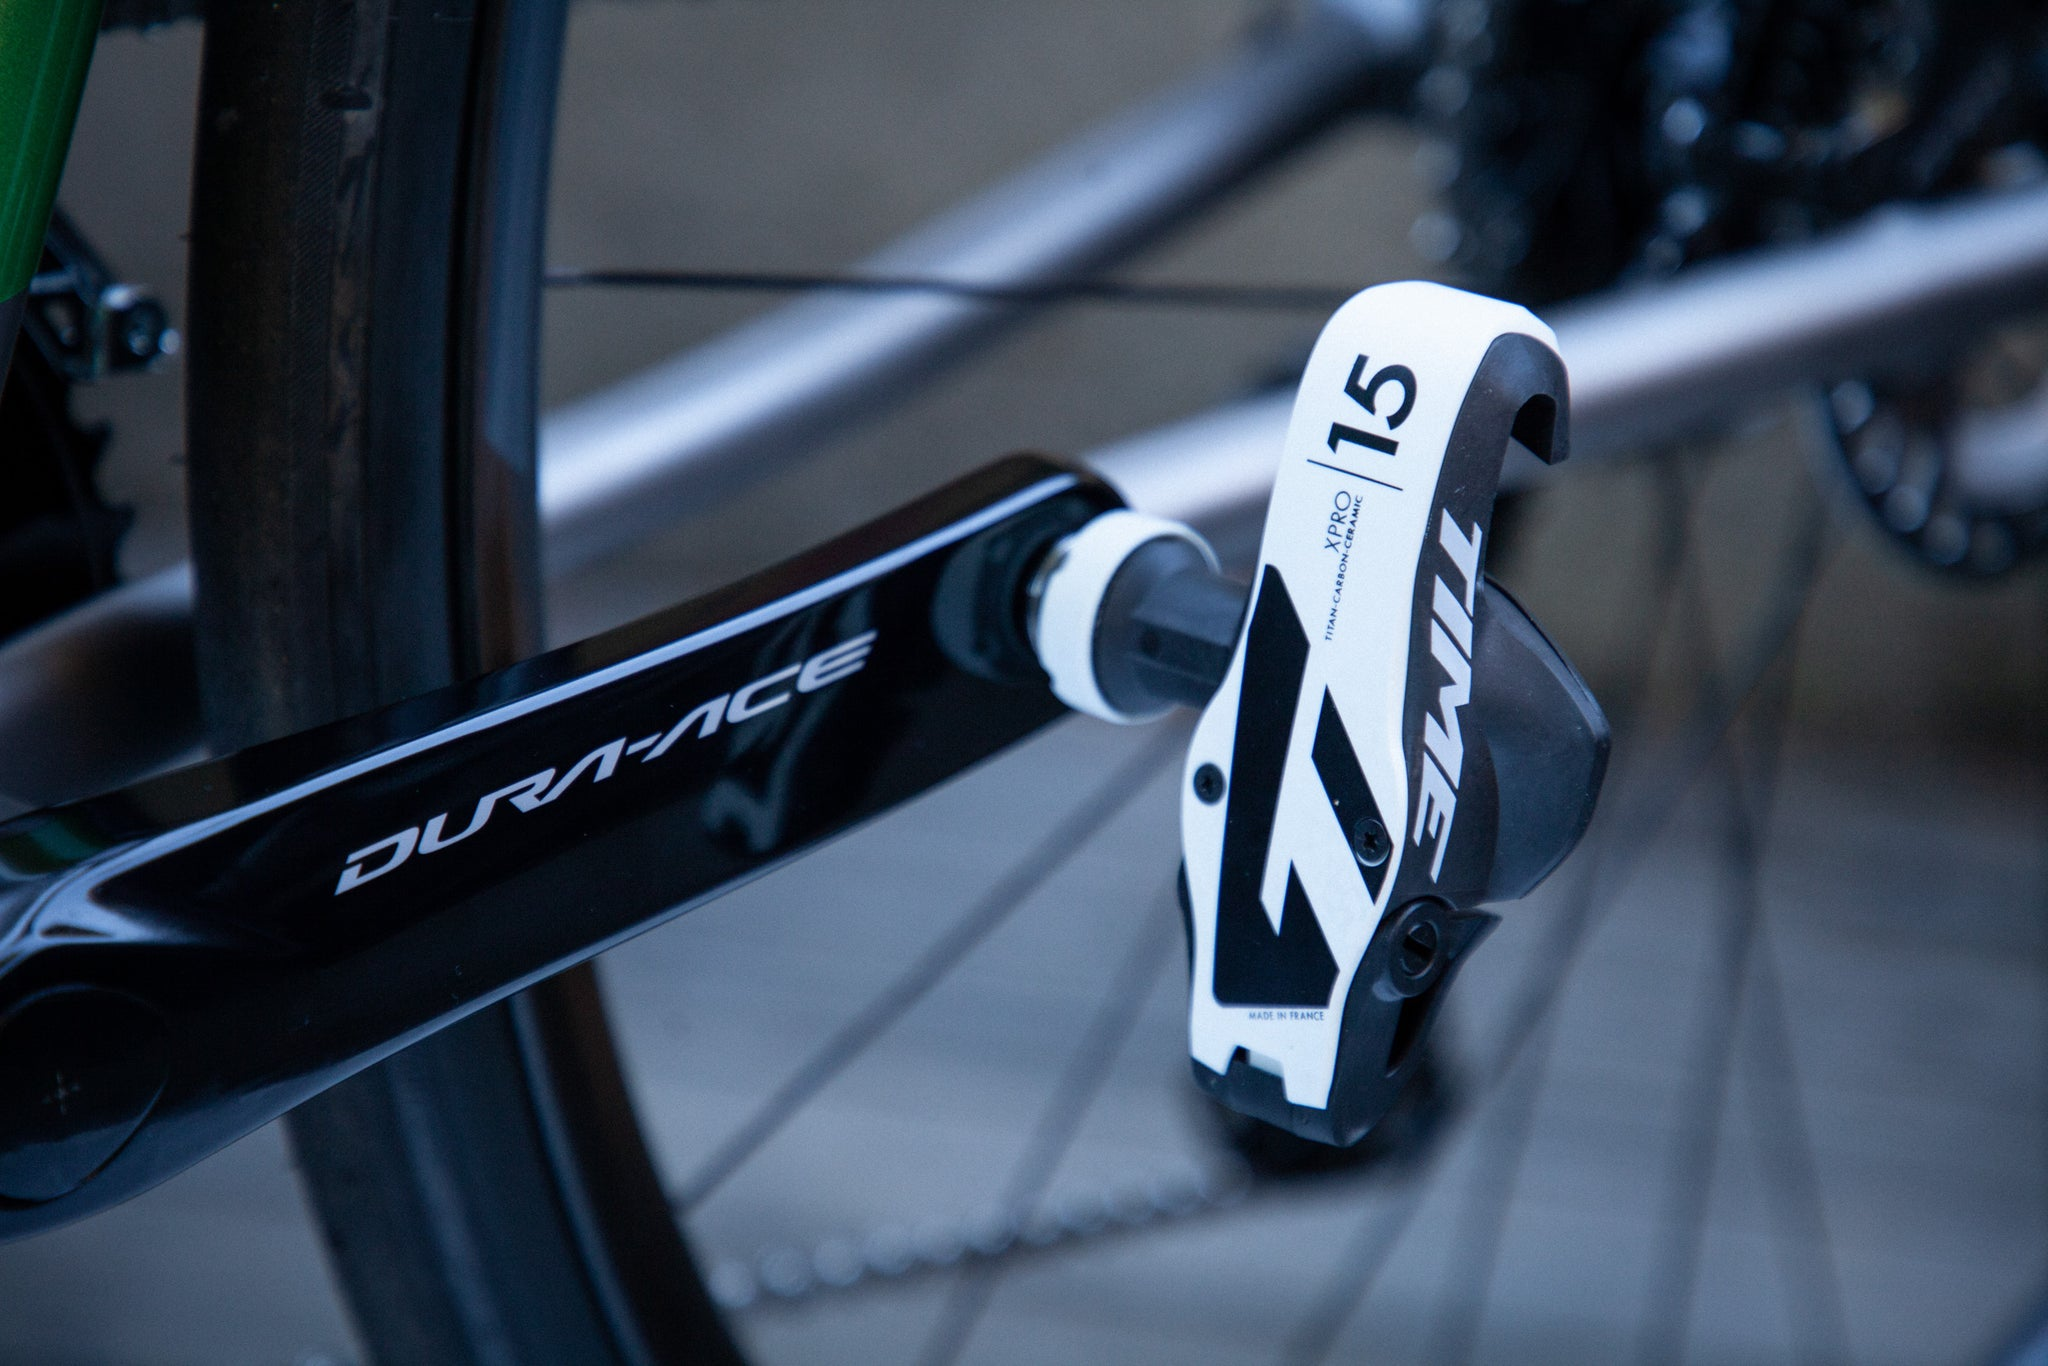 mosaic gt1 shimano grx time pedal